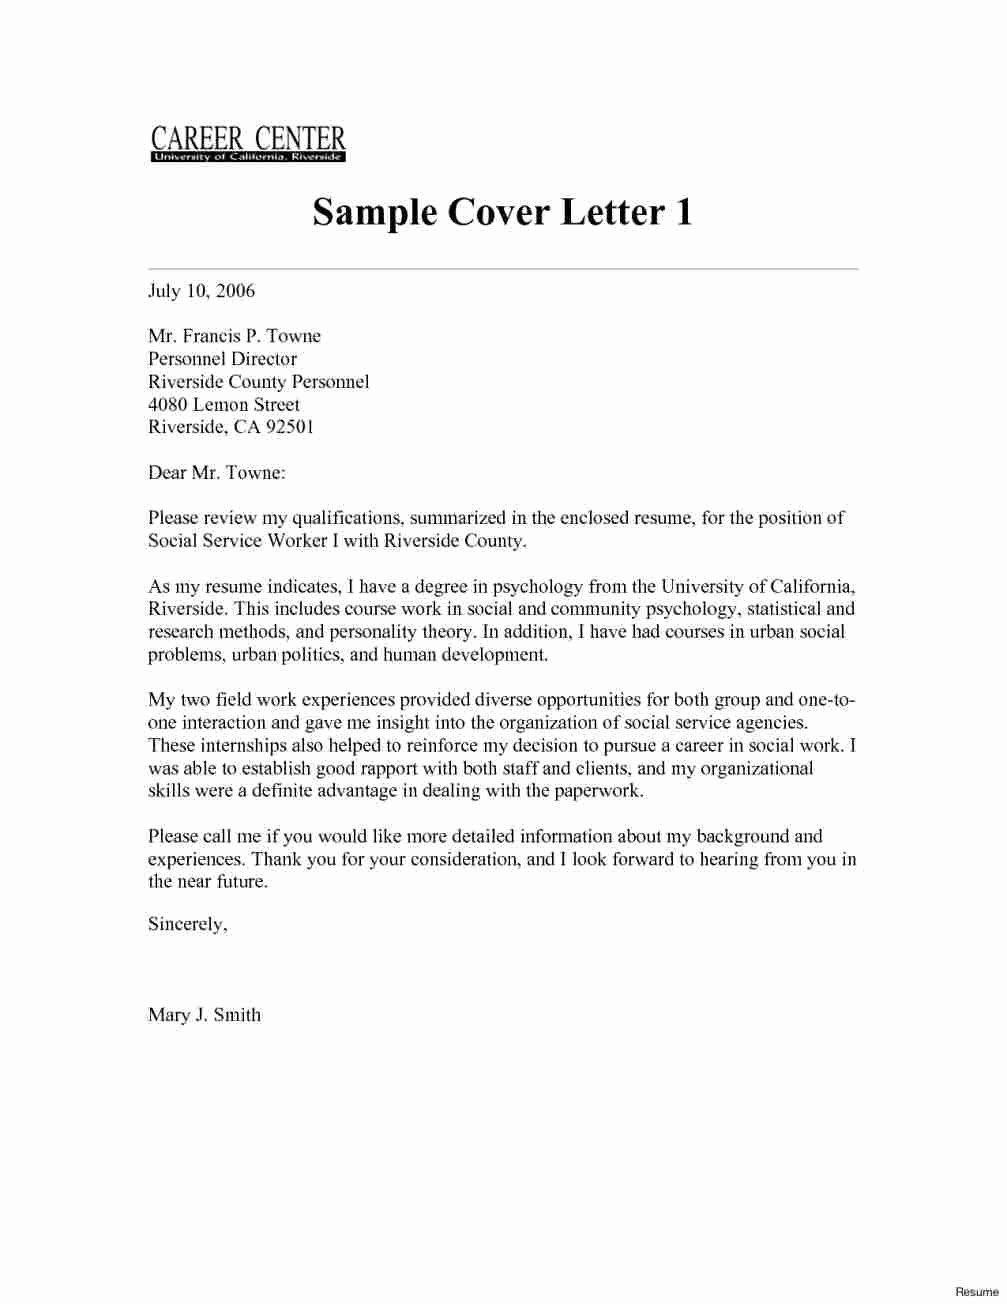 Social Services Cover Letter Sample